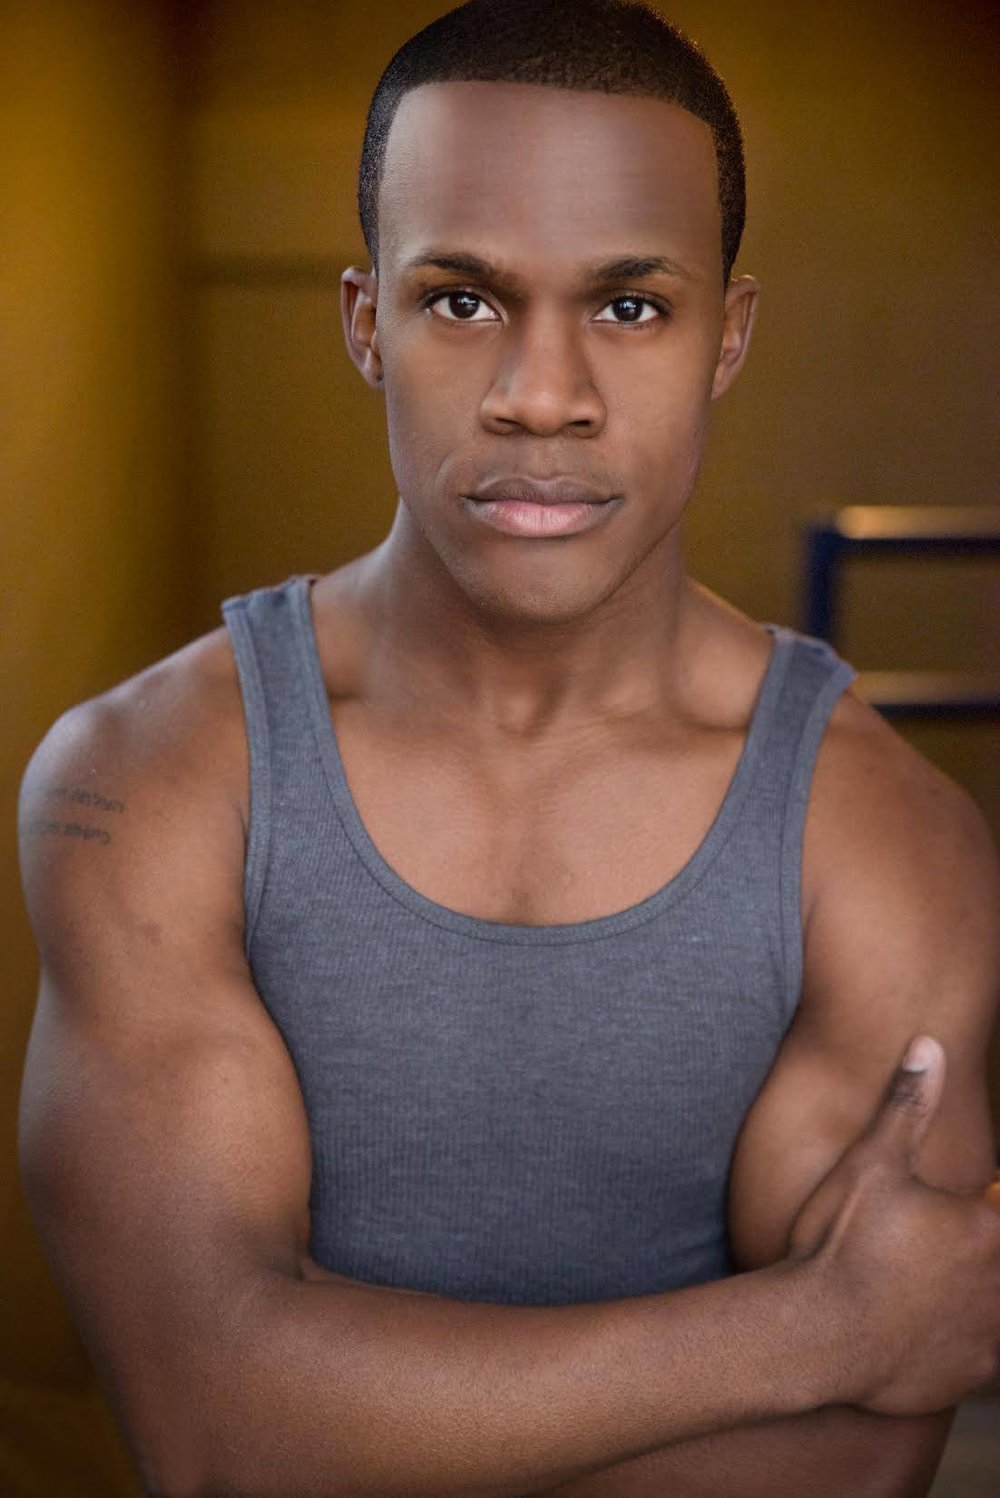 Meet Lyonel! - Lyonel -- a recent Chicago transplant after being bi-coastal in the NYC/LA regions performing regionally as well as touring Nationally and Internationally; respectively. He is also proud to be on the cover of the published play WILD by Crystal Skillman, where he originated the role of VIN.  He is an actor, artist, writer, comedian, and public figure taking the opportunity to laugh, speak truth to social and cultural injustices in our world all  while using the word